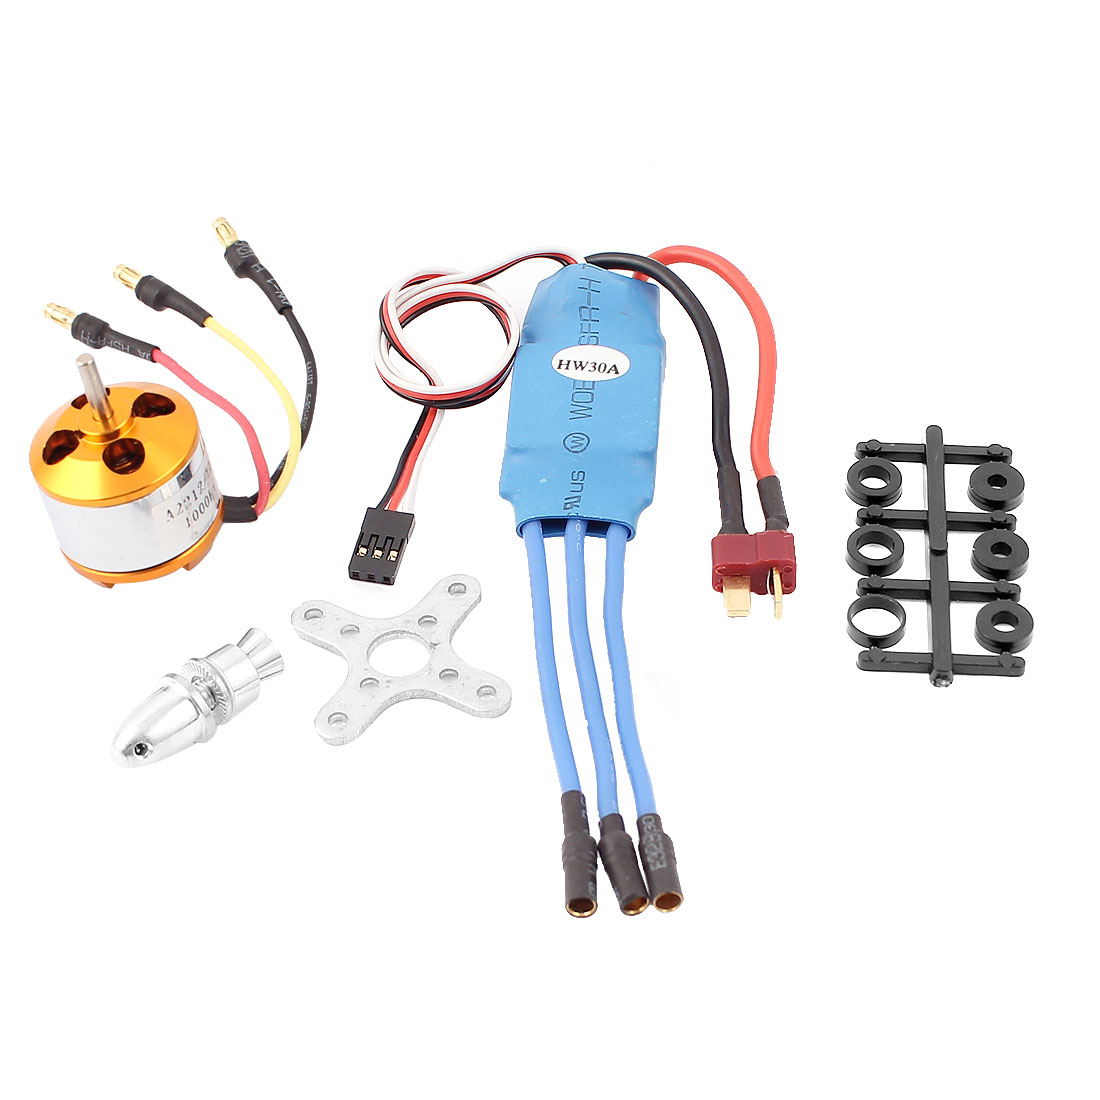 1000KV Brushless Motor XXD2212 + 30A ESC for RC Plane Helicopter